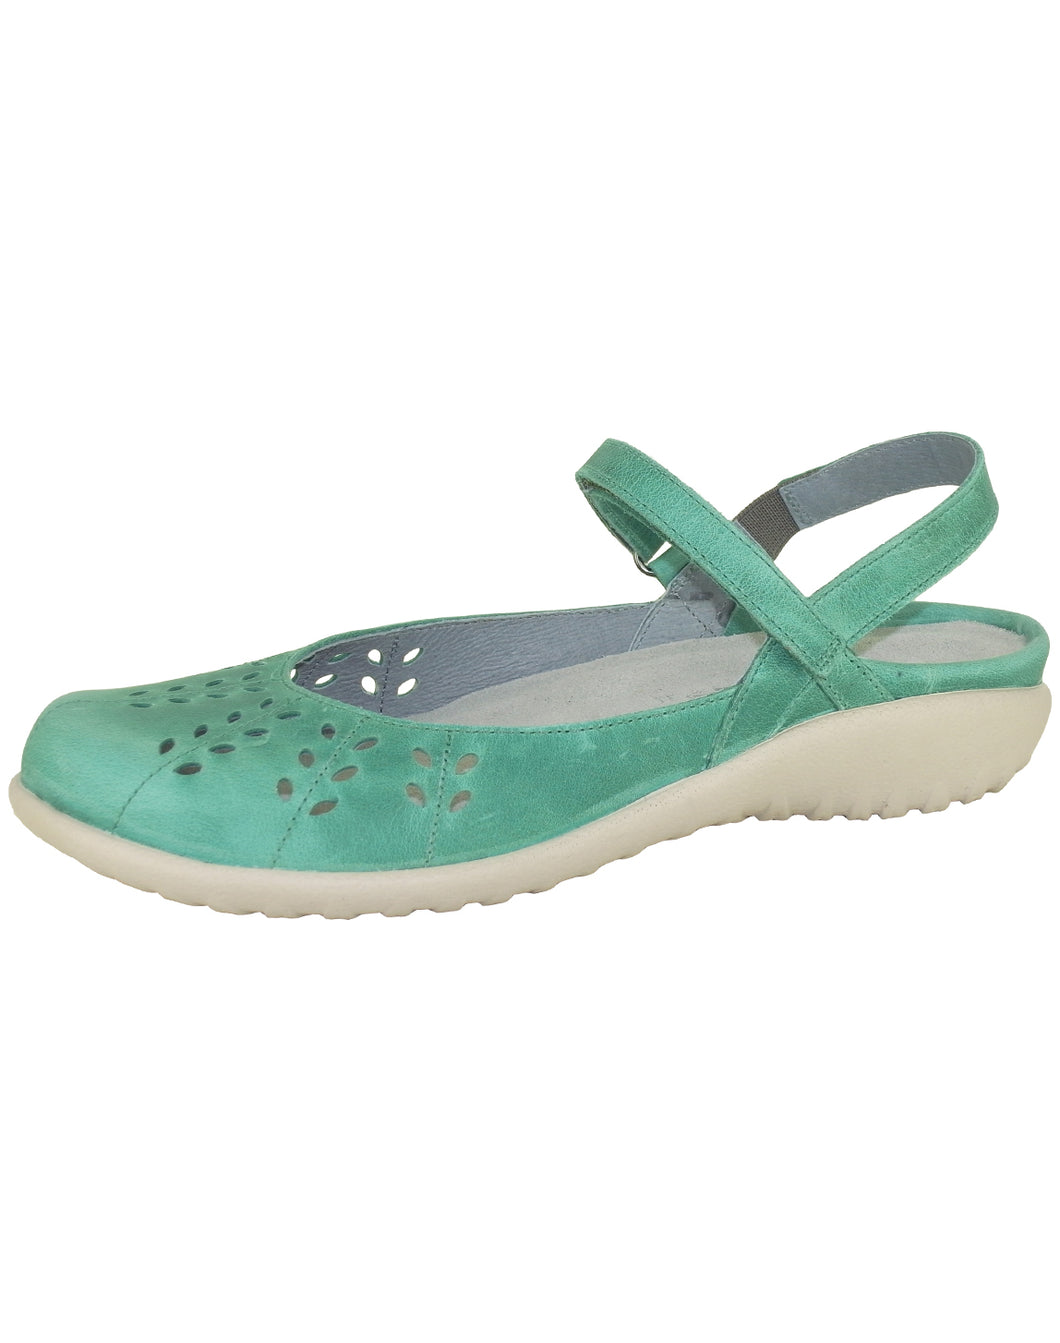 RARI CLOSED TOE SANDAL 36-42F NAOT S20 - OILY EMERALD